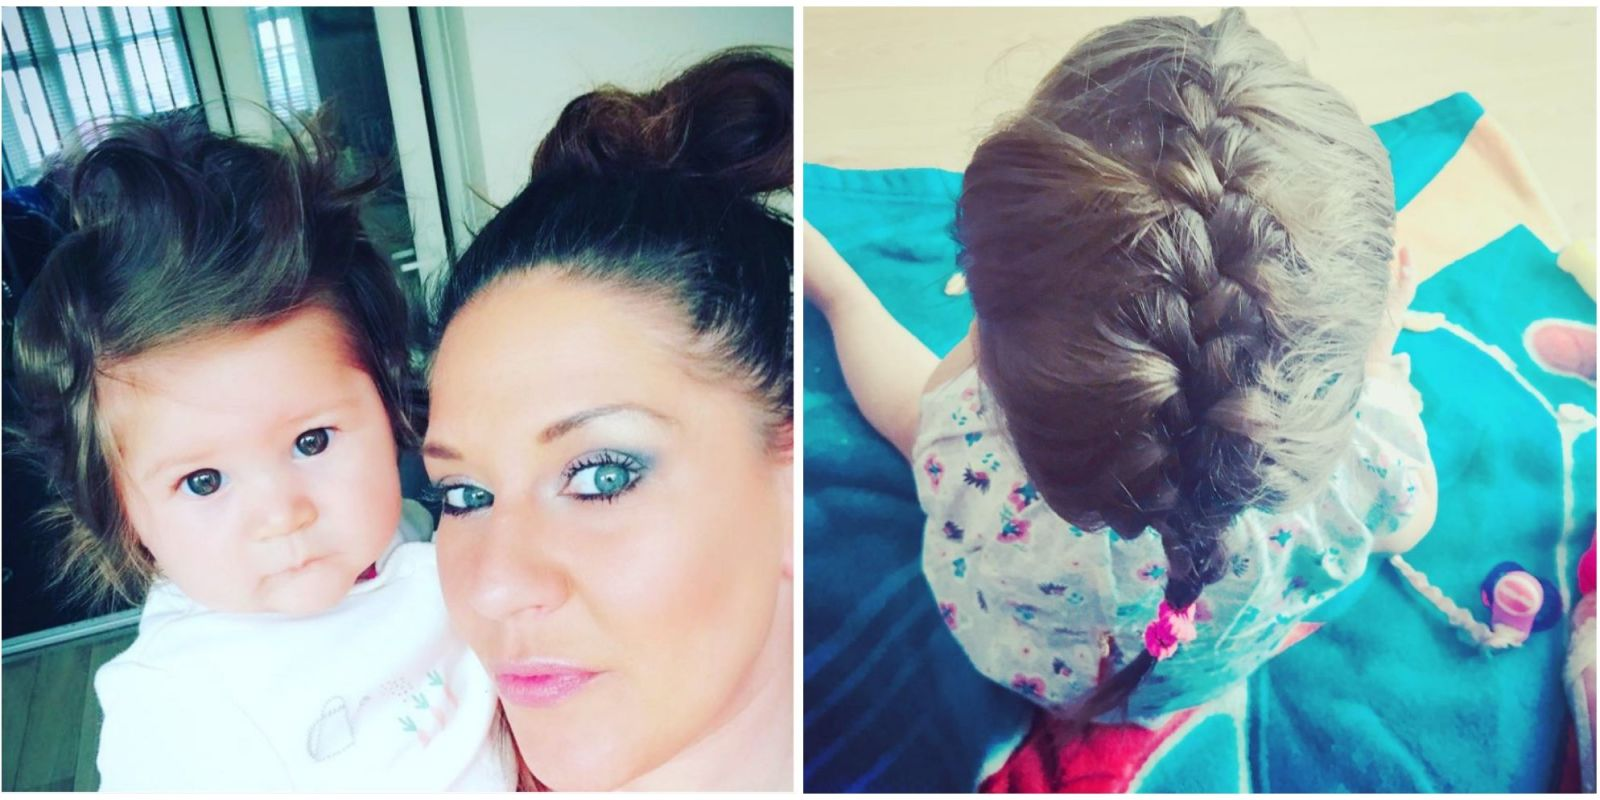 Baby Hair Styles Braids: Adorable 9-Month-Old Baby Has Hair Long Enough To Braid